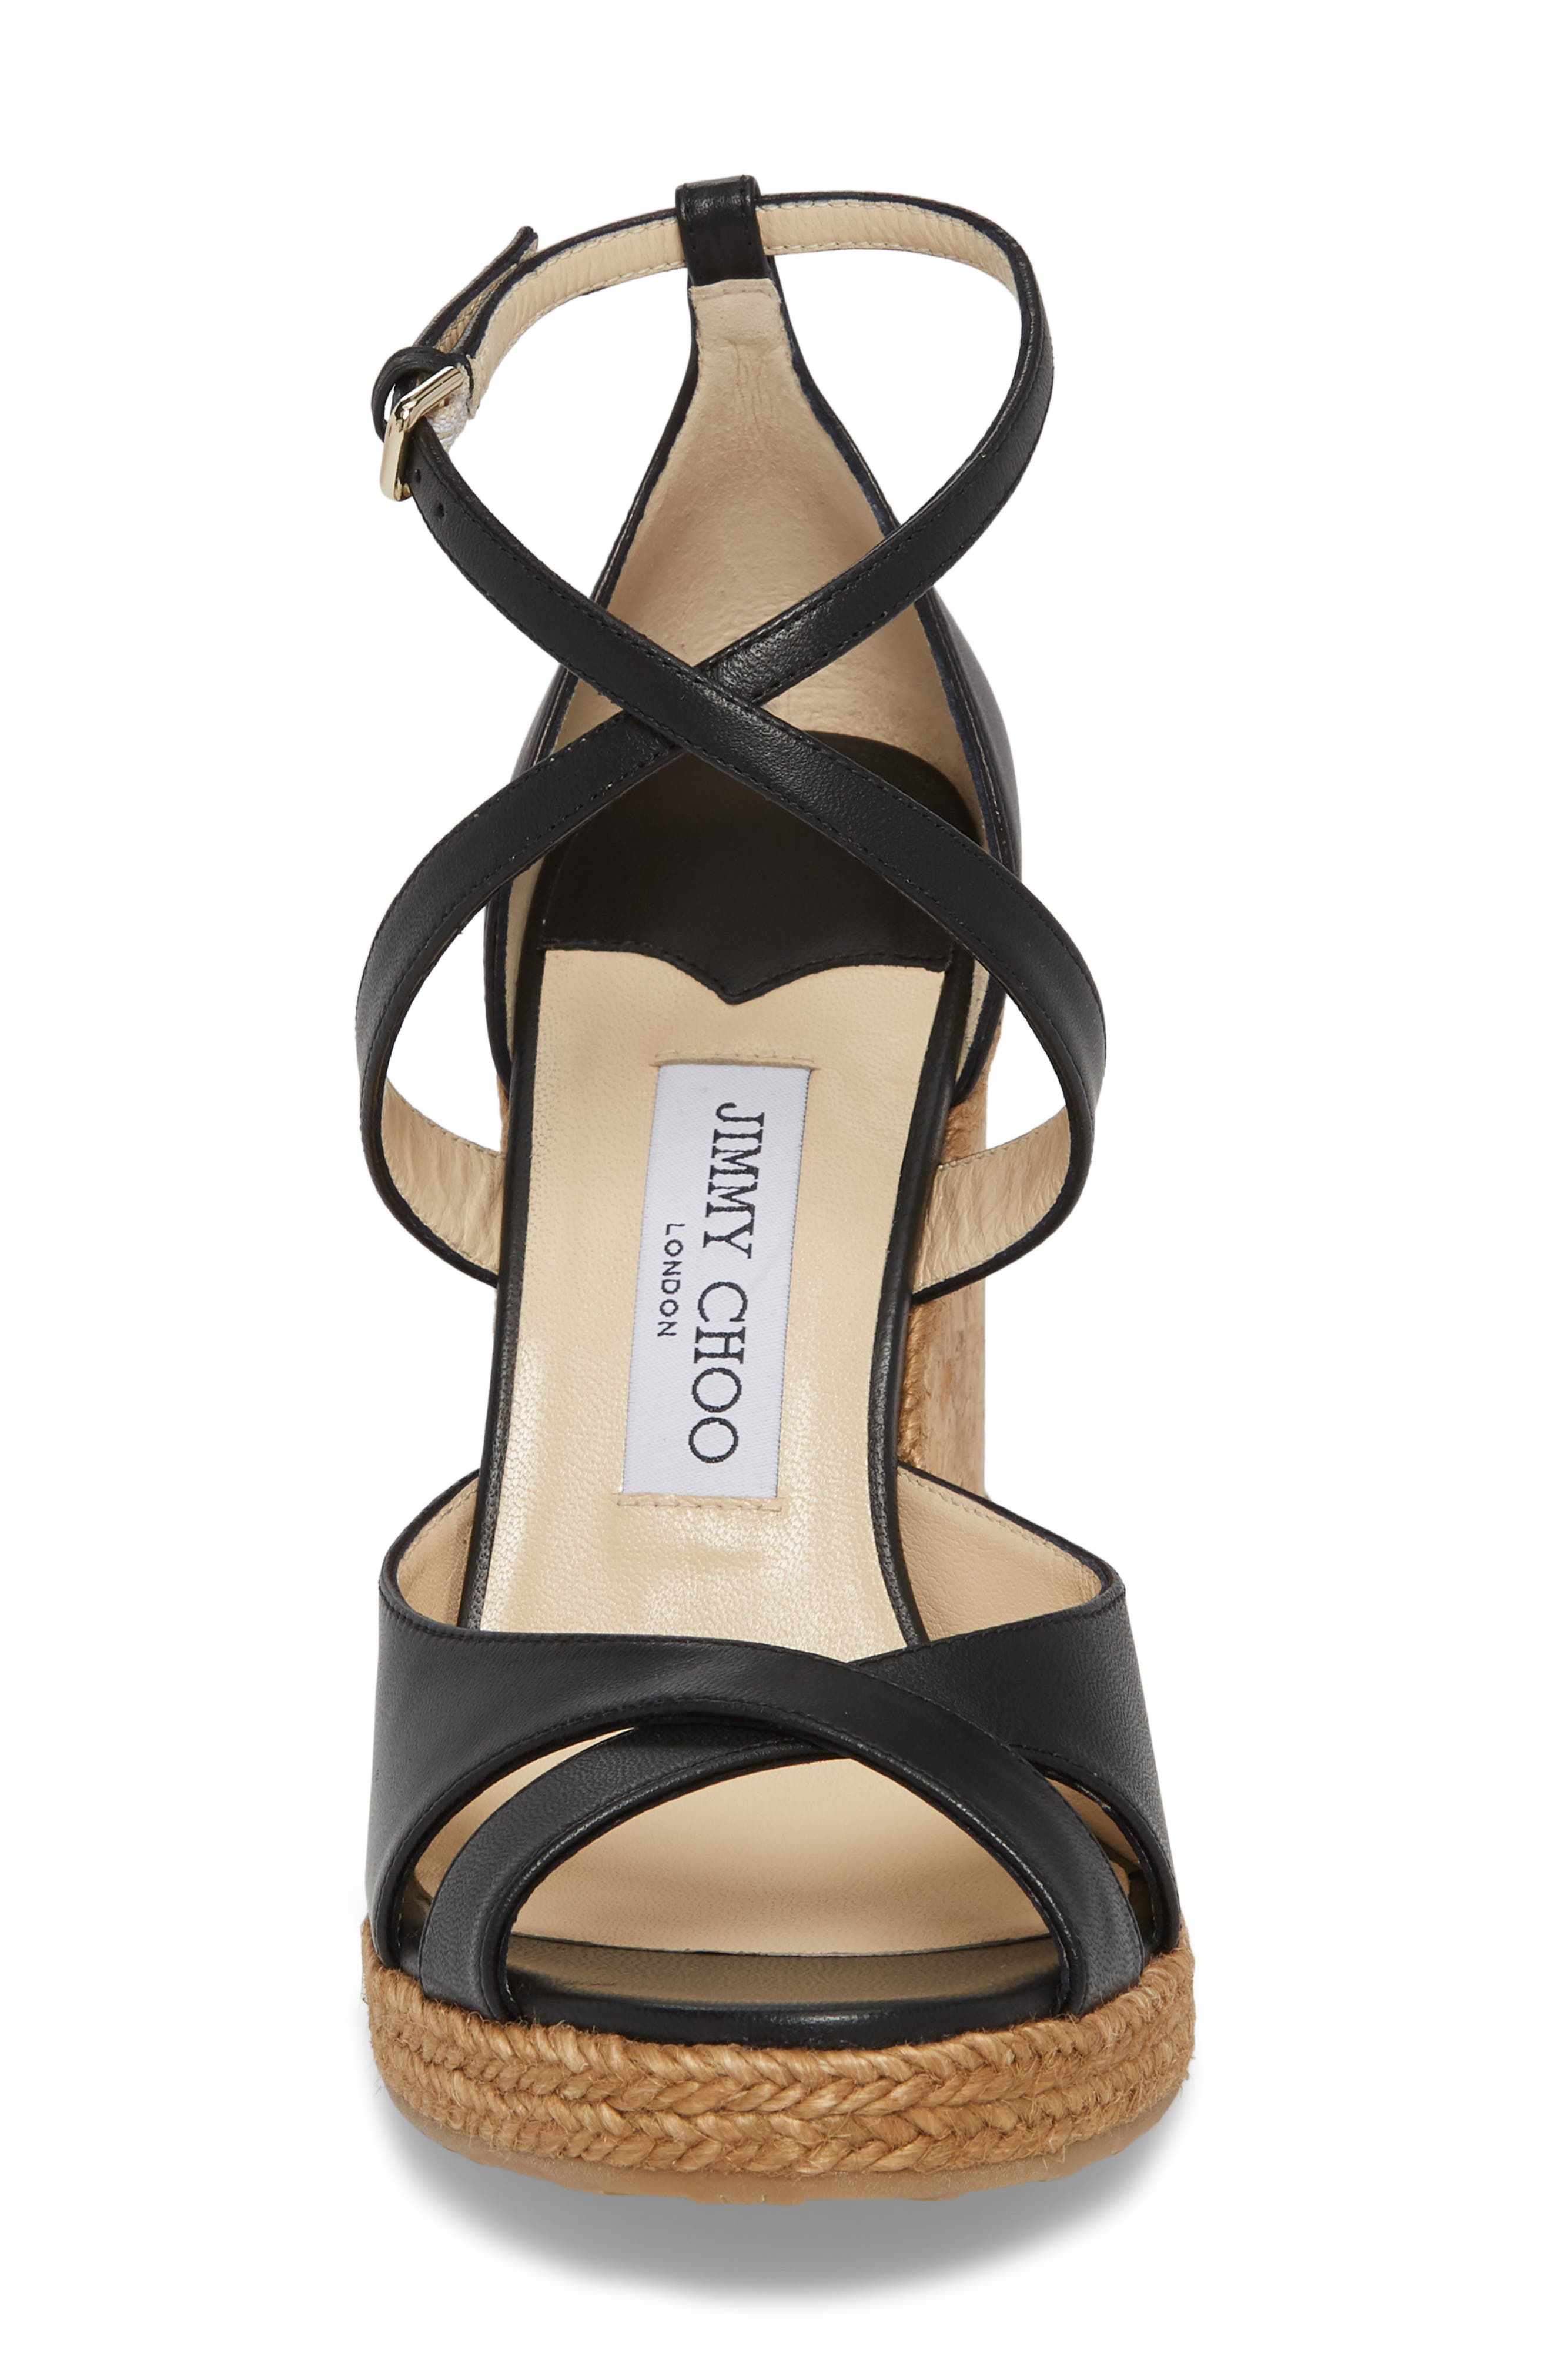 JIMMY CHOO, Alanah Espadrille Wedge Sandal, Alternate thumbnail 4, color, BLACK